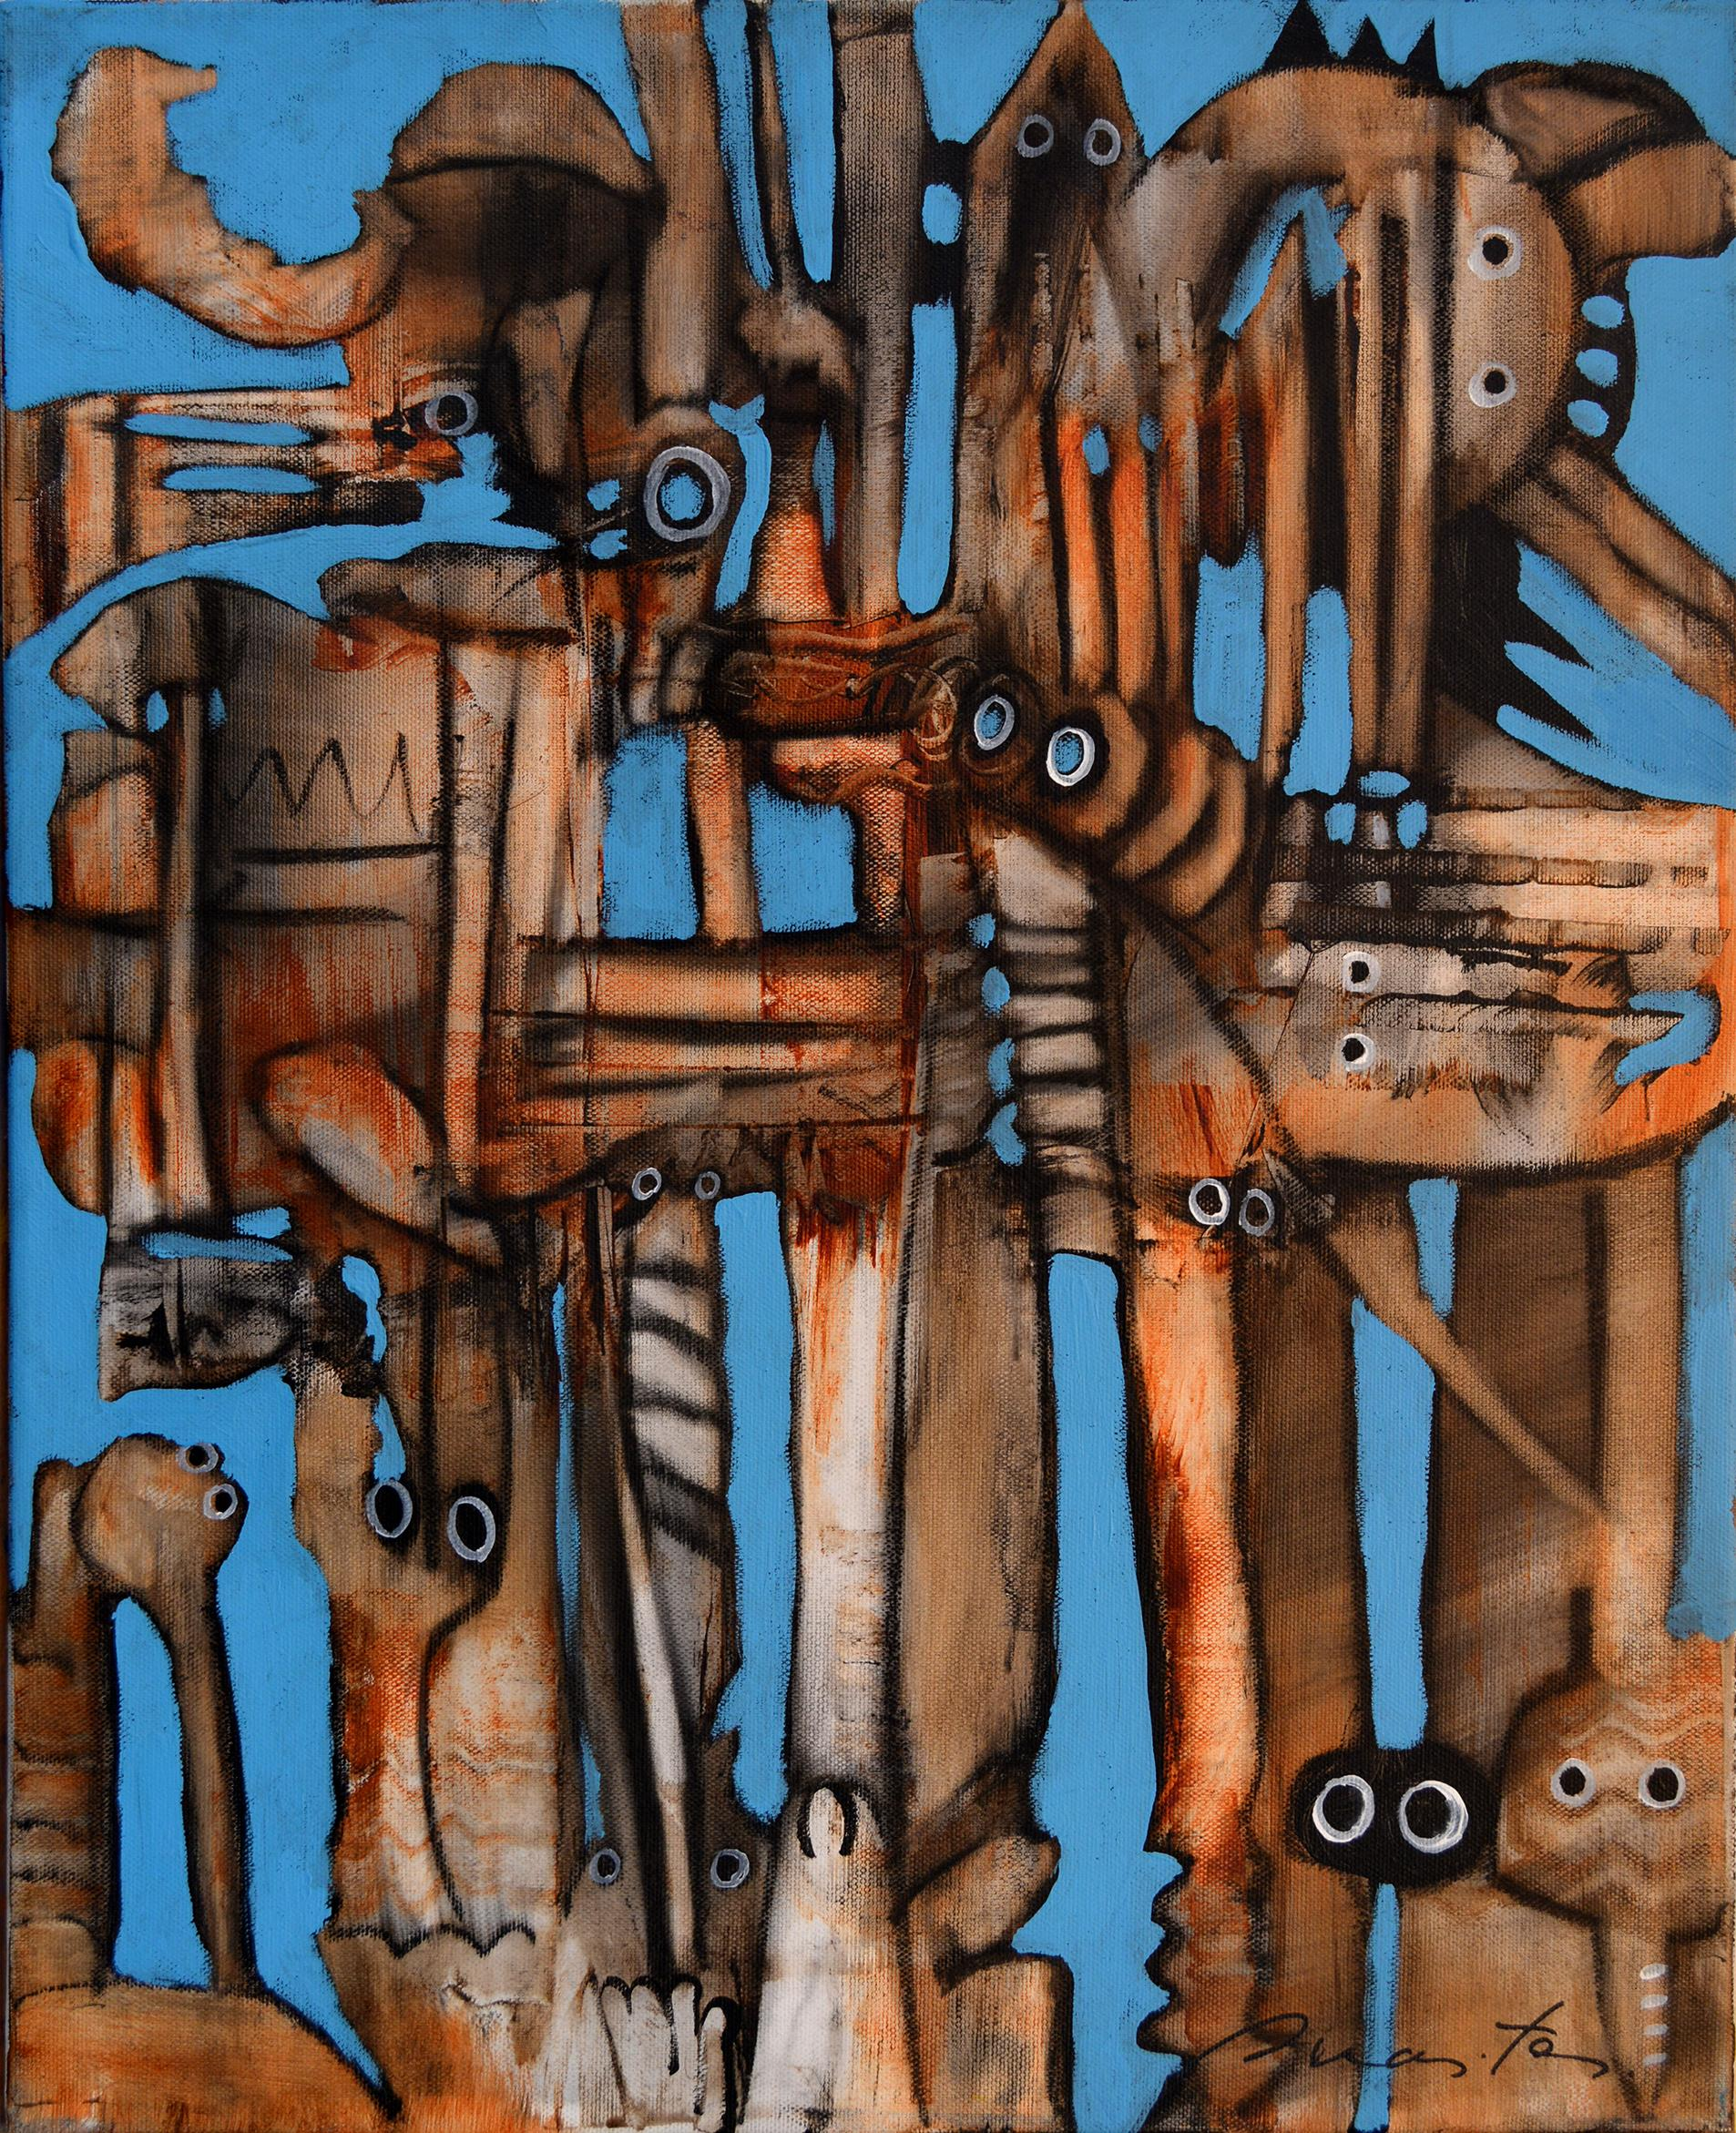 Observers, Contemporary Abstract Art Acrylic Charcoal Painting Canvas Orange